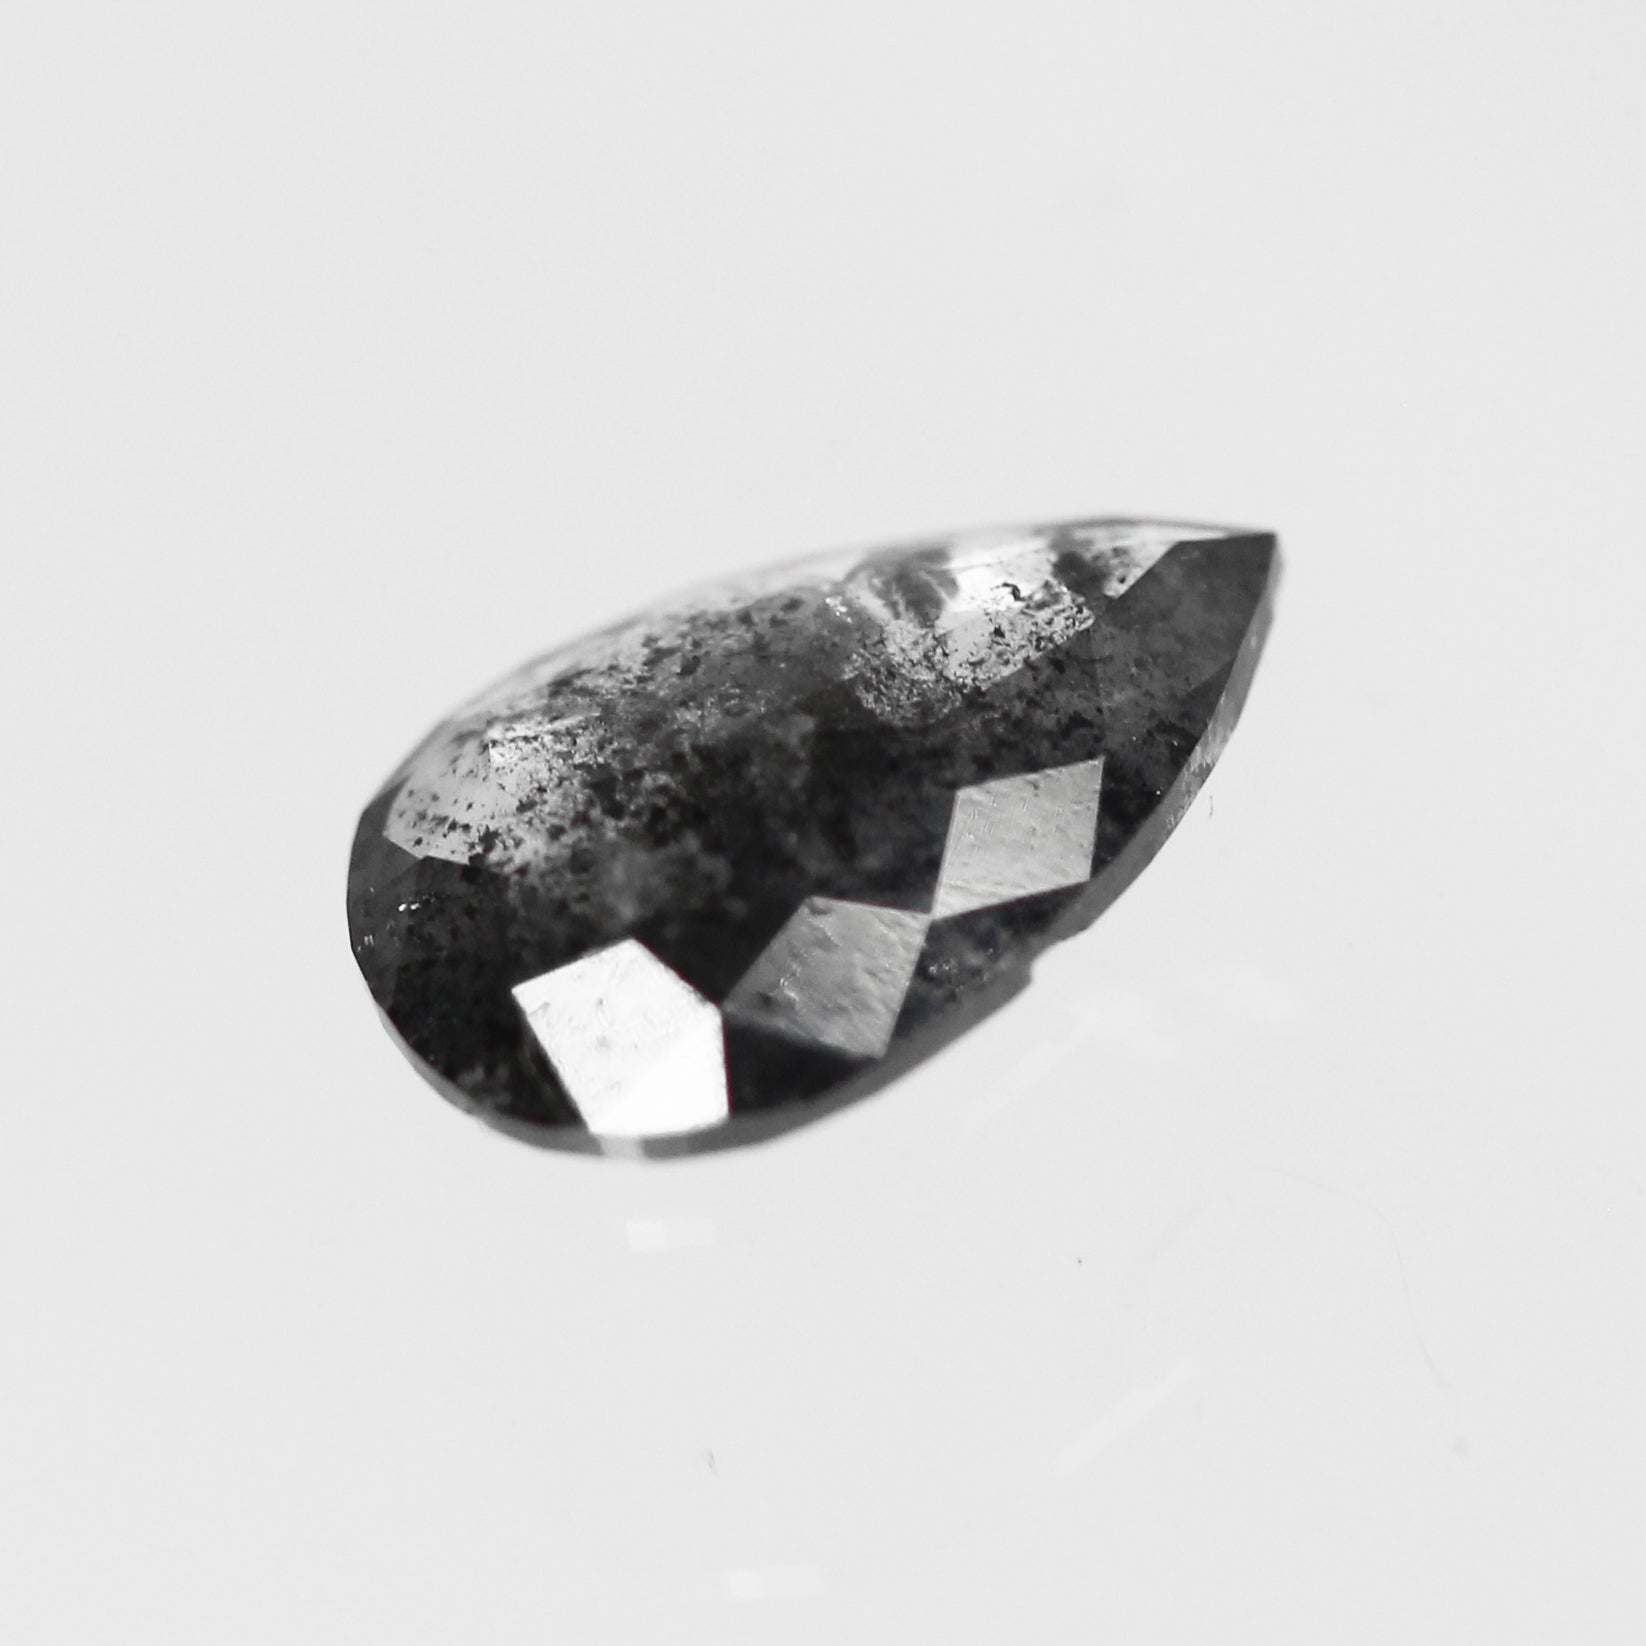 1.29 Carat Pear Celestial Diamond for Custom Work - Inventory Code PRD129 - Celestial Diamonds ® by Midwinter Co.